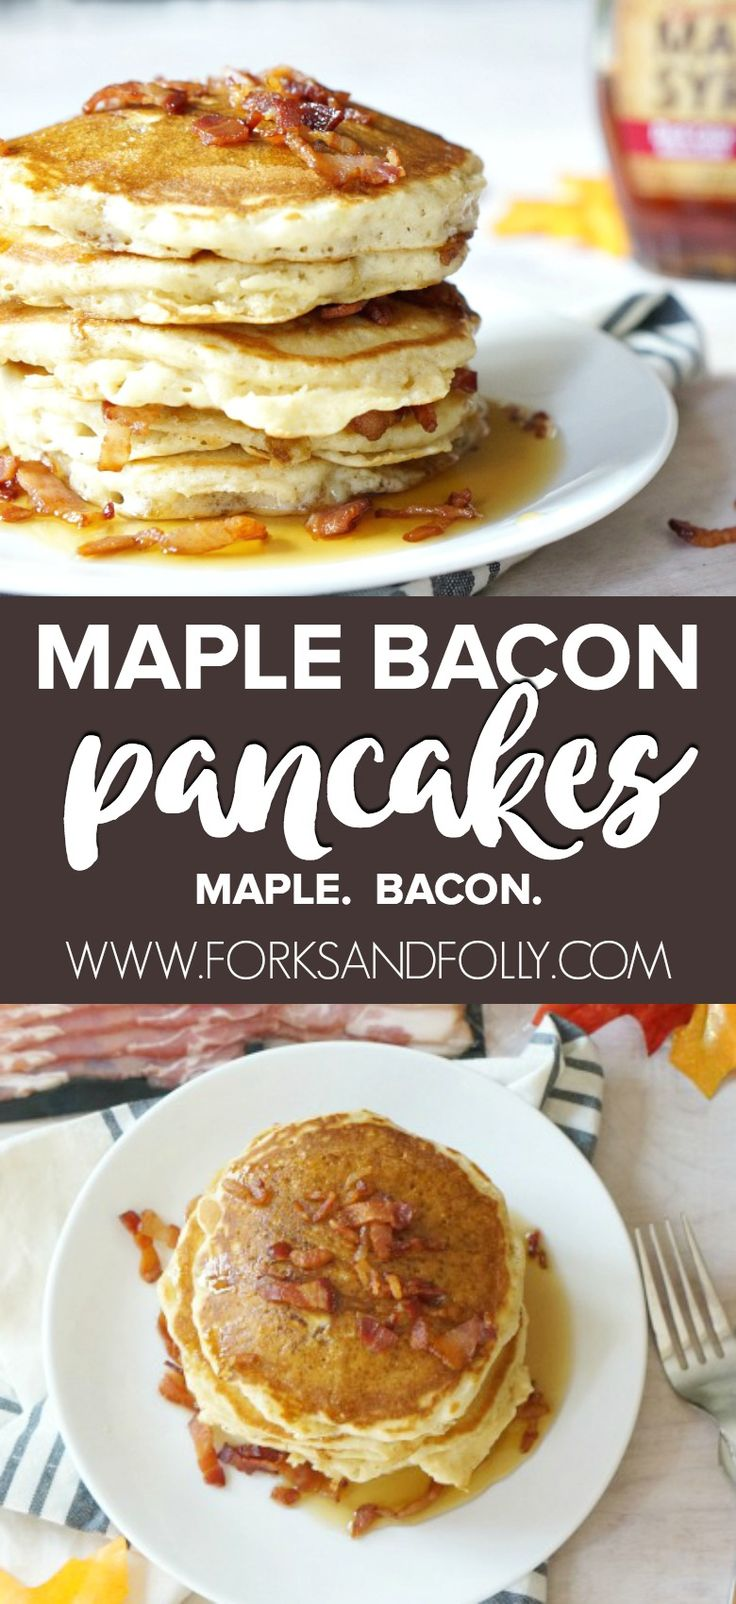 #AD  Not a breakfast person?  You haven't had our Maple Bacon Pancakes recipe! With bacon in the batter and sprinkled on top plus maple syrup throughout, THIS is the sweet-salty combo to start your day!